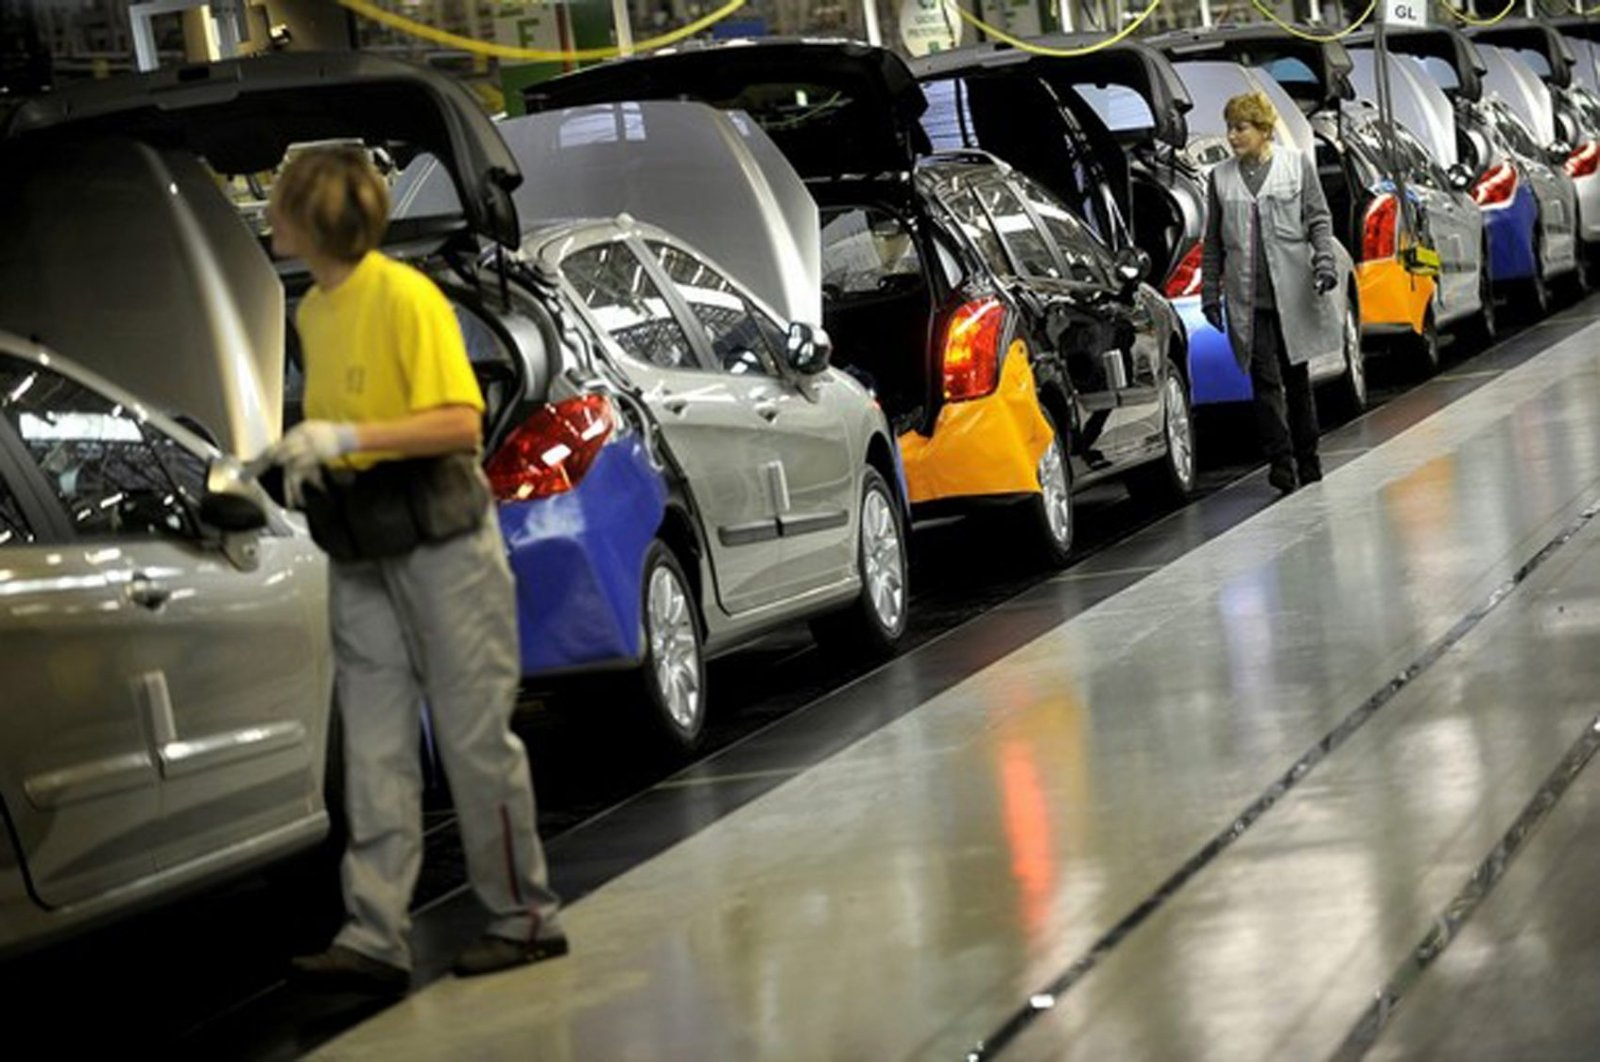 Employees working on an assembly line of the PSA Peugeot Citroen car factory in Sohaux, France, Sept. 11, 2008. (AFP Photo)